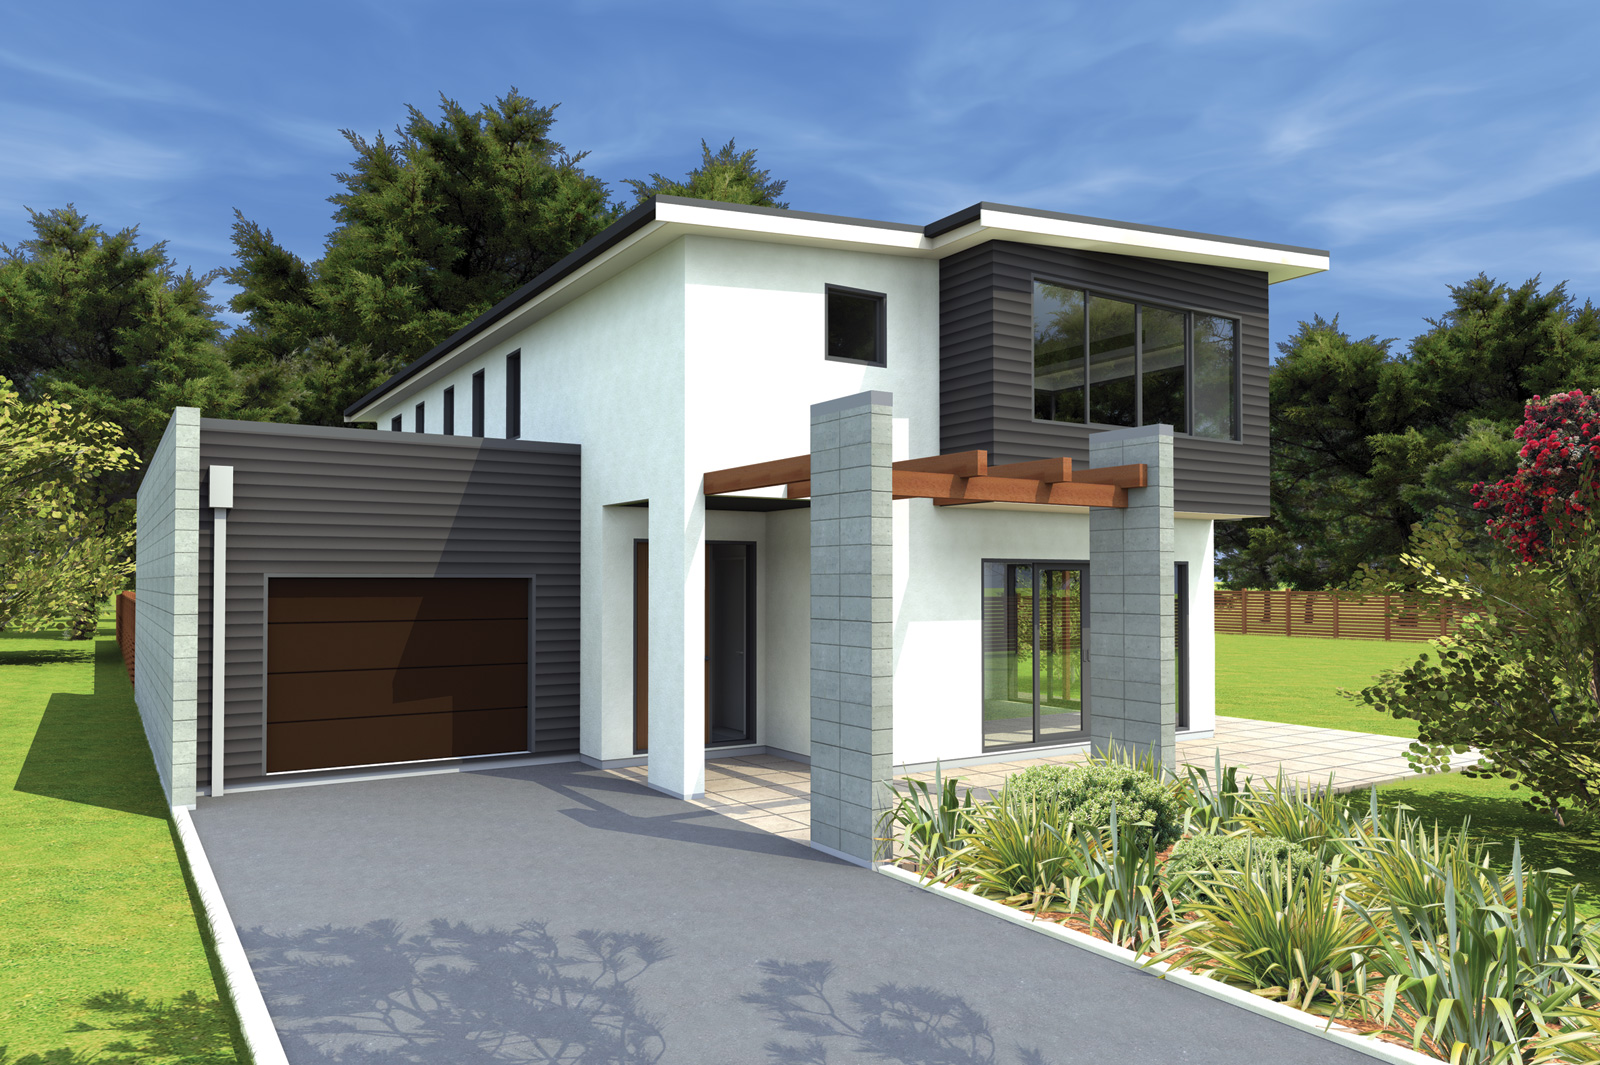 New home designs latest. New Modern homes designs New Zealand